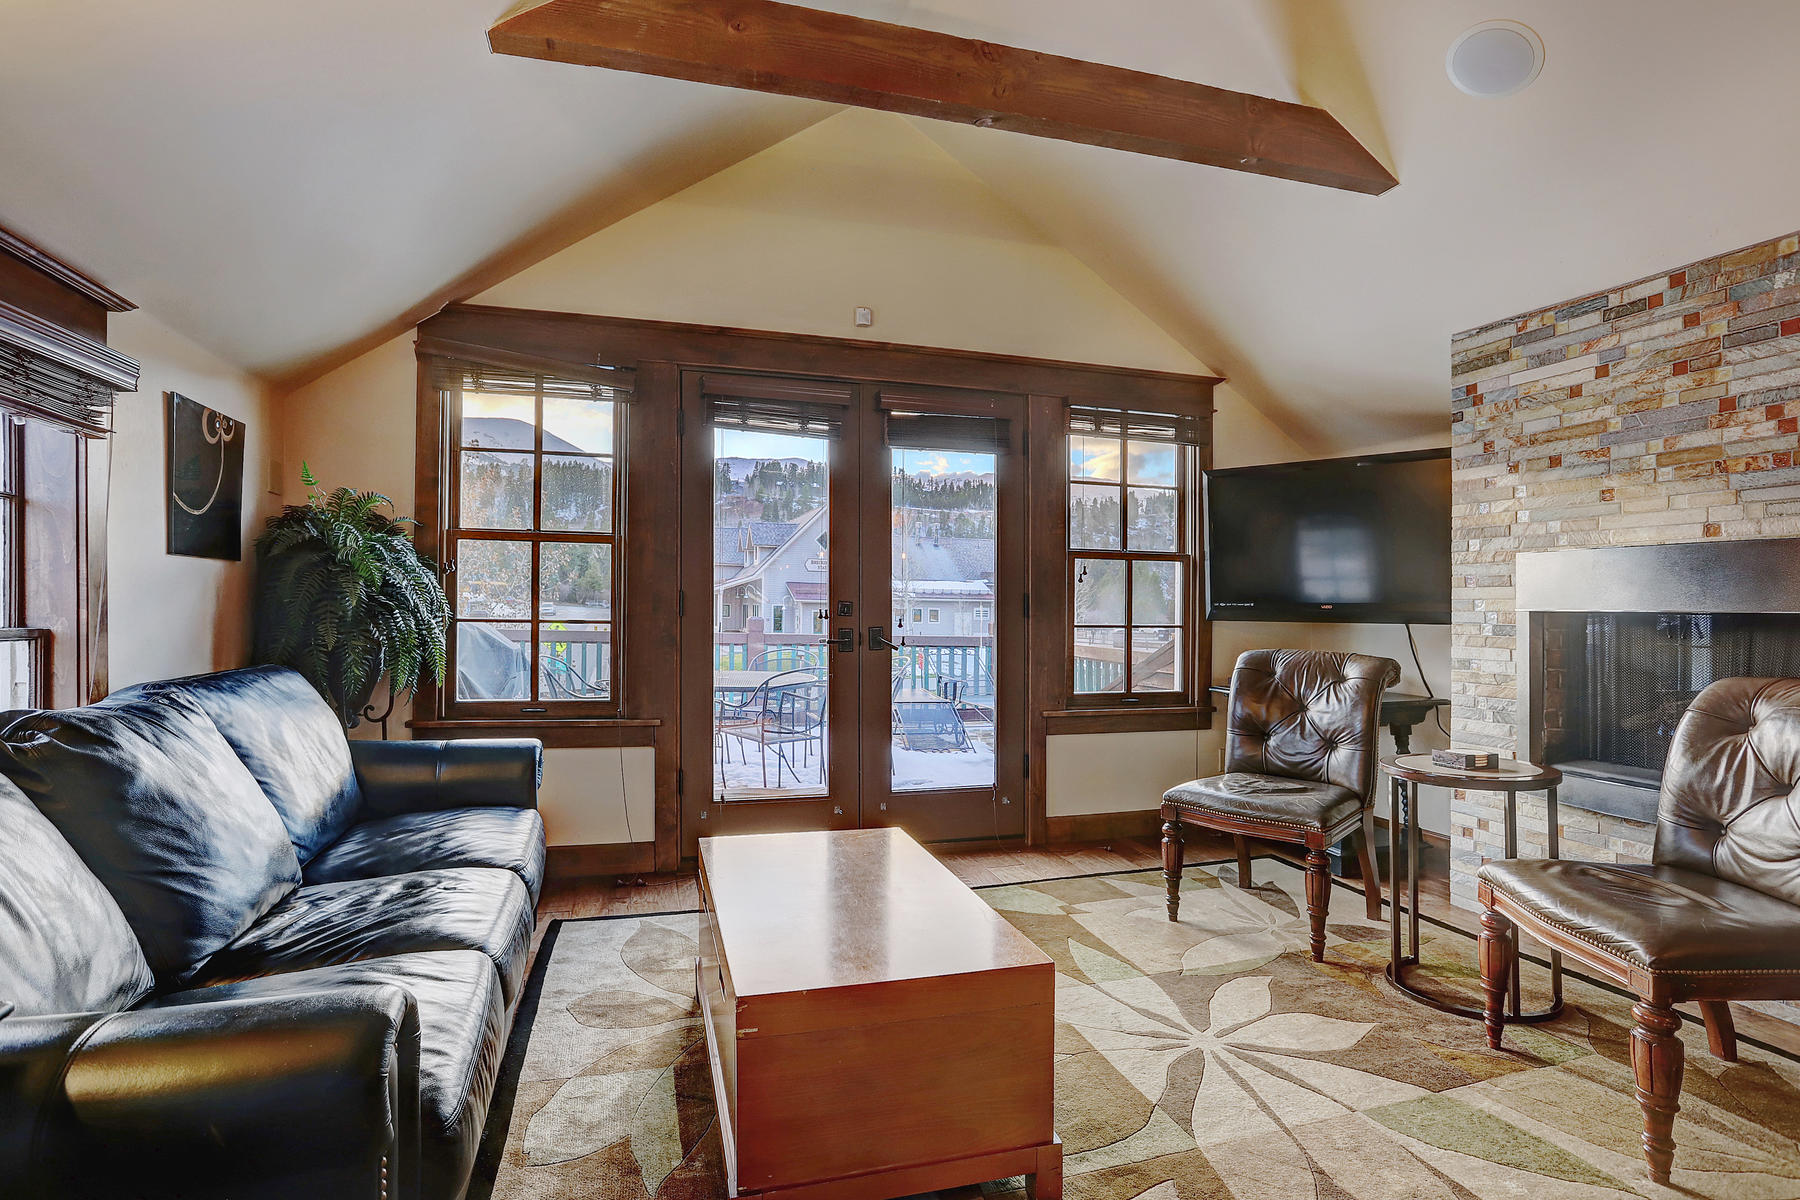 Single Family Homes for Sale at The Gondola House 301 N Main Street Breckenridge, Colorado 80424 United States